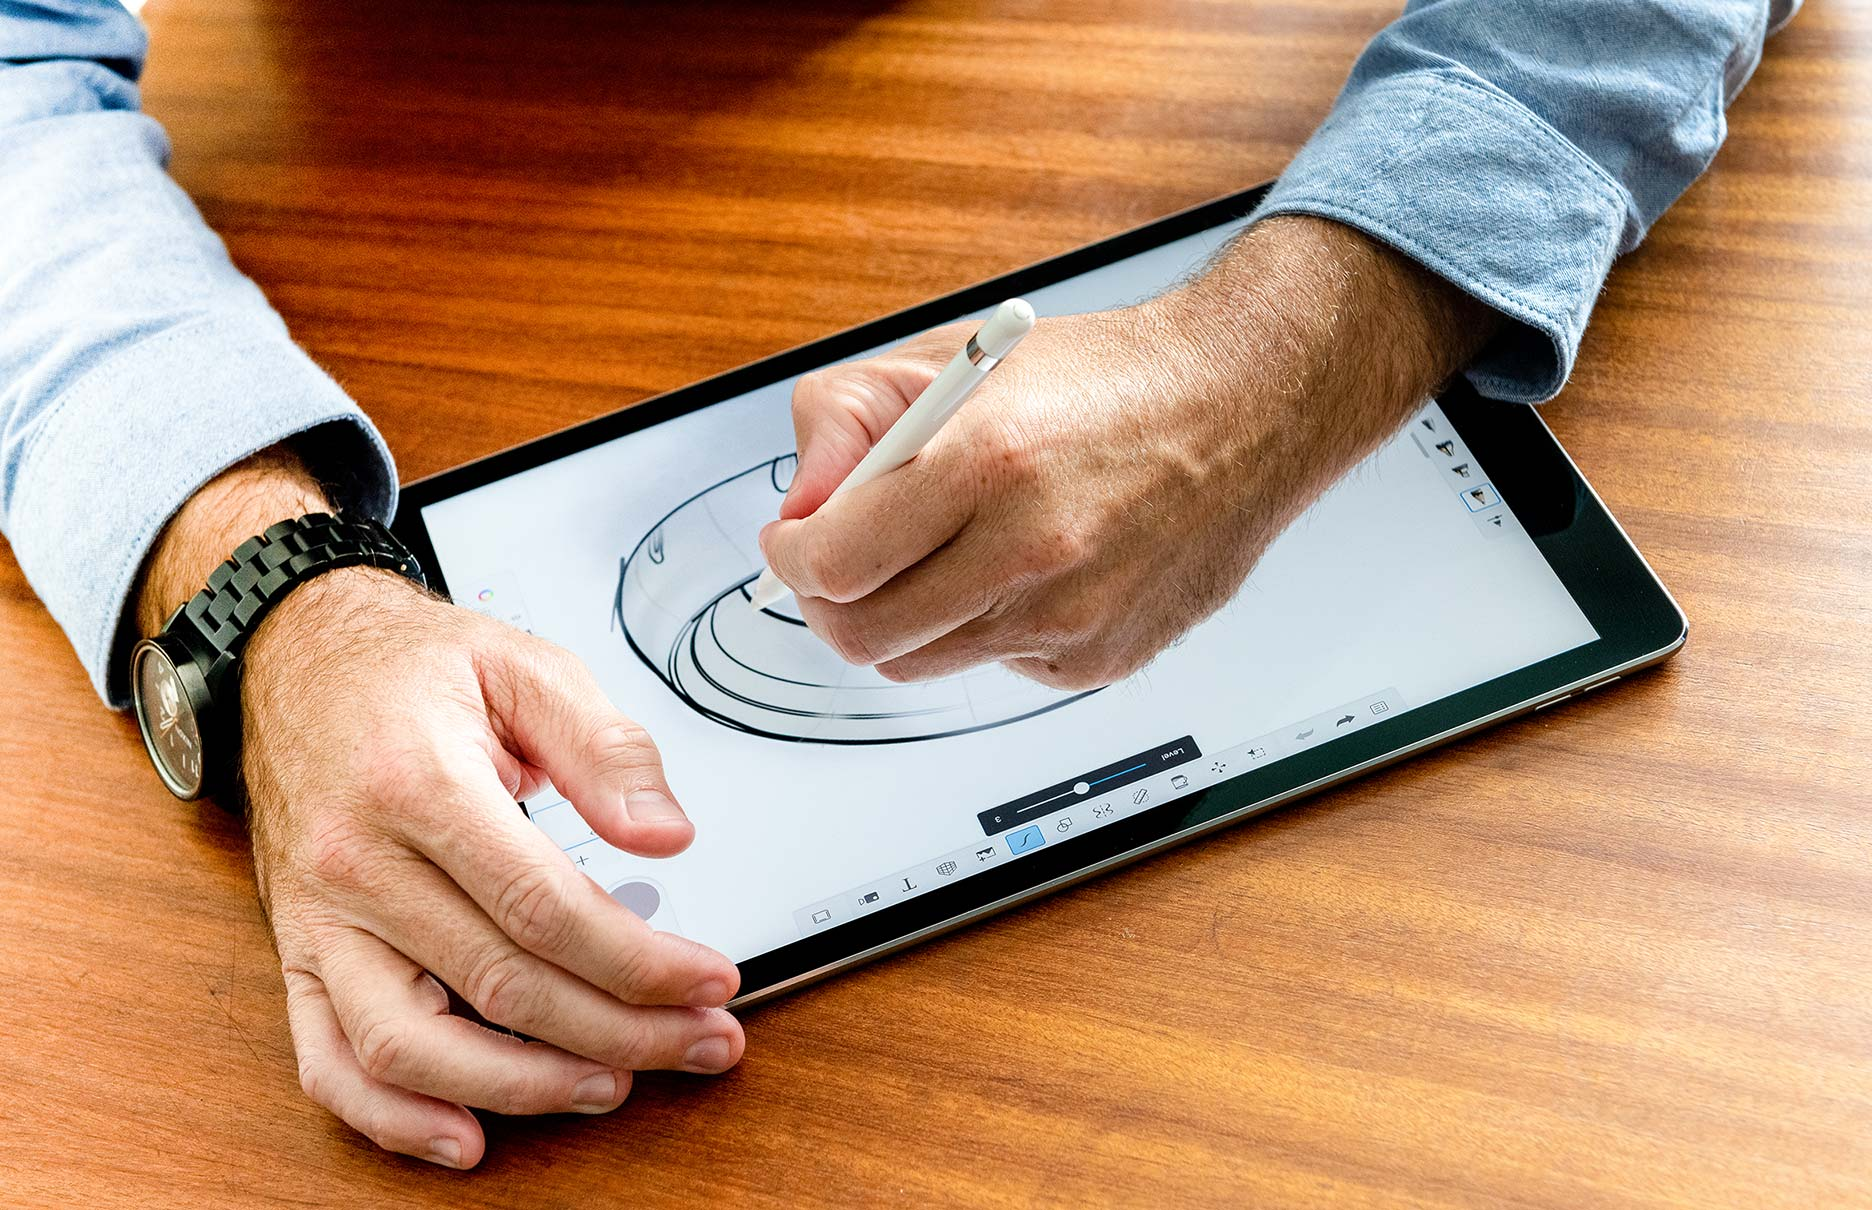 product designers sketching